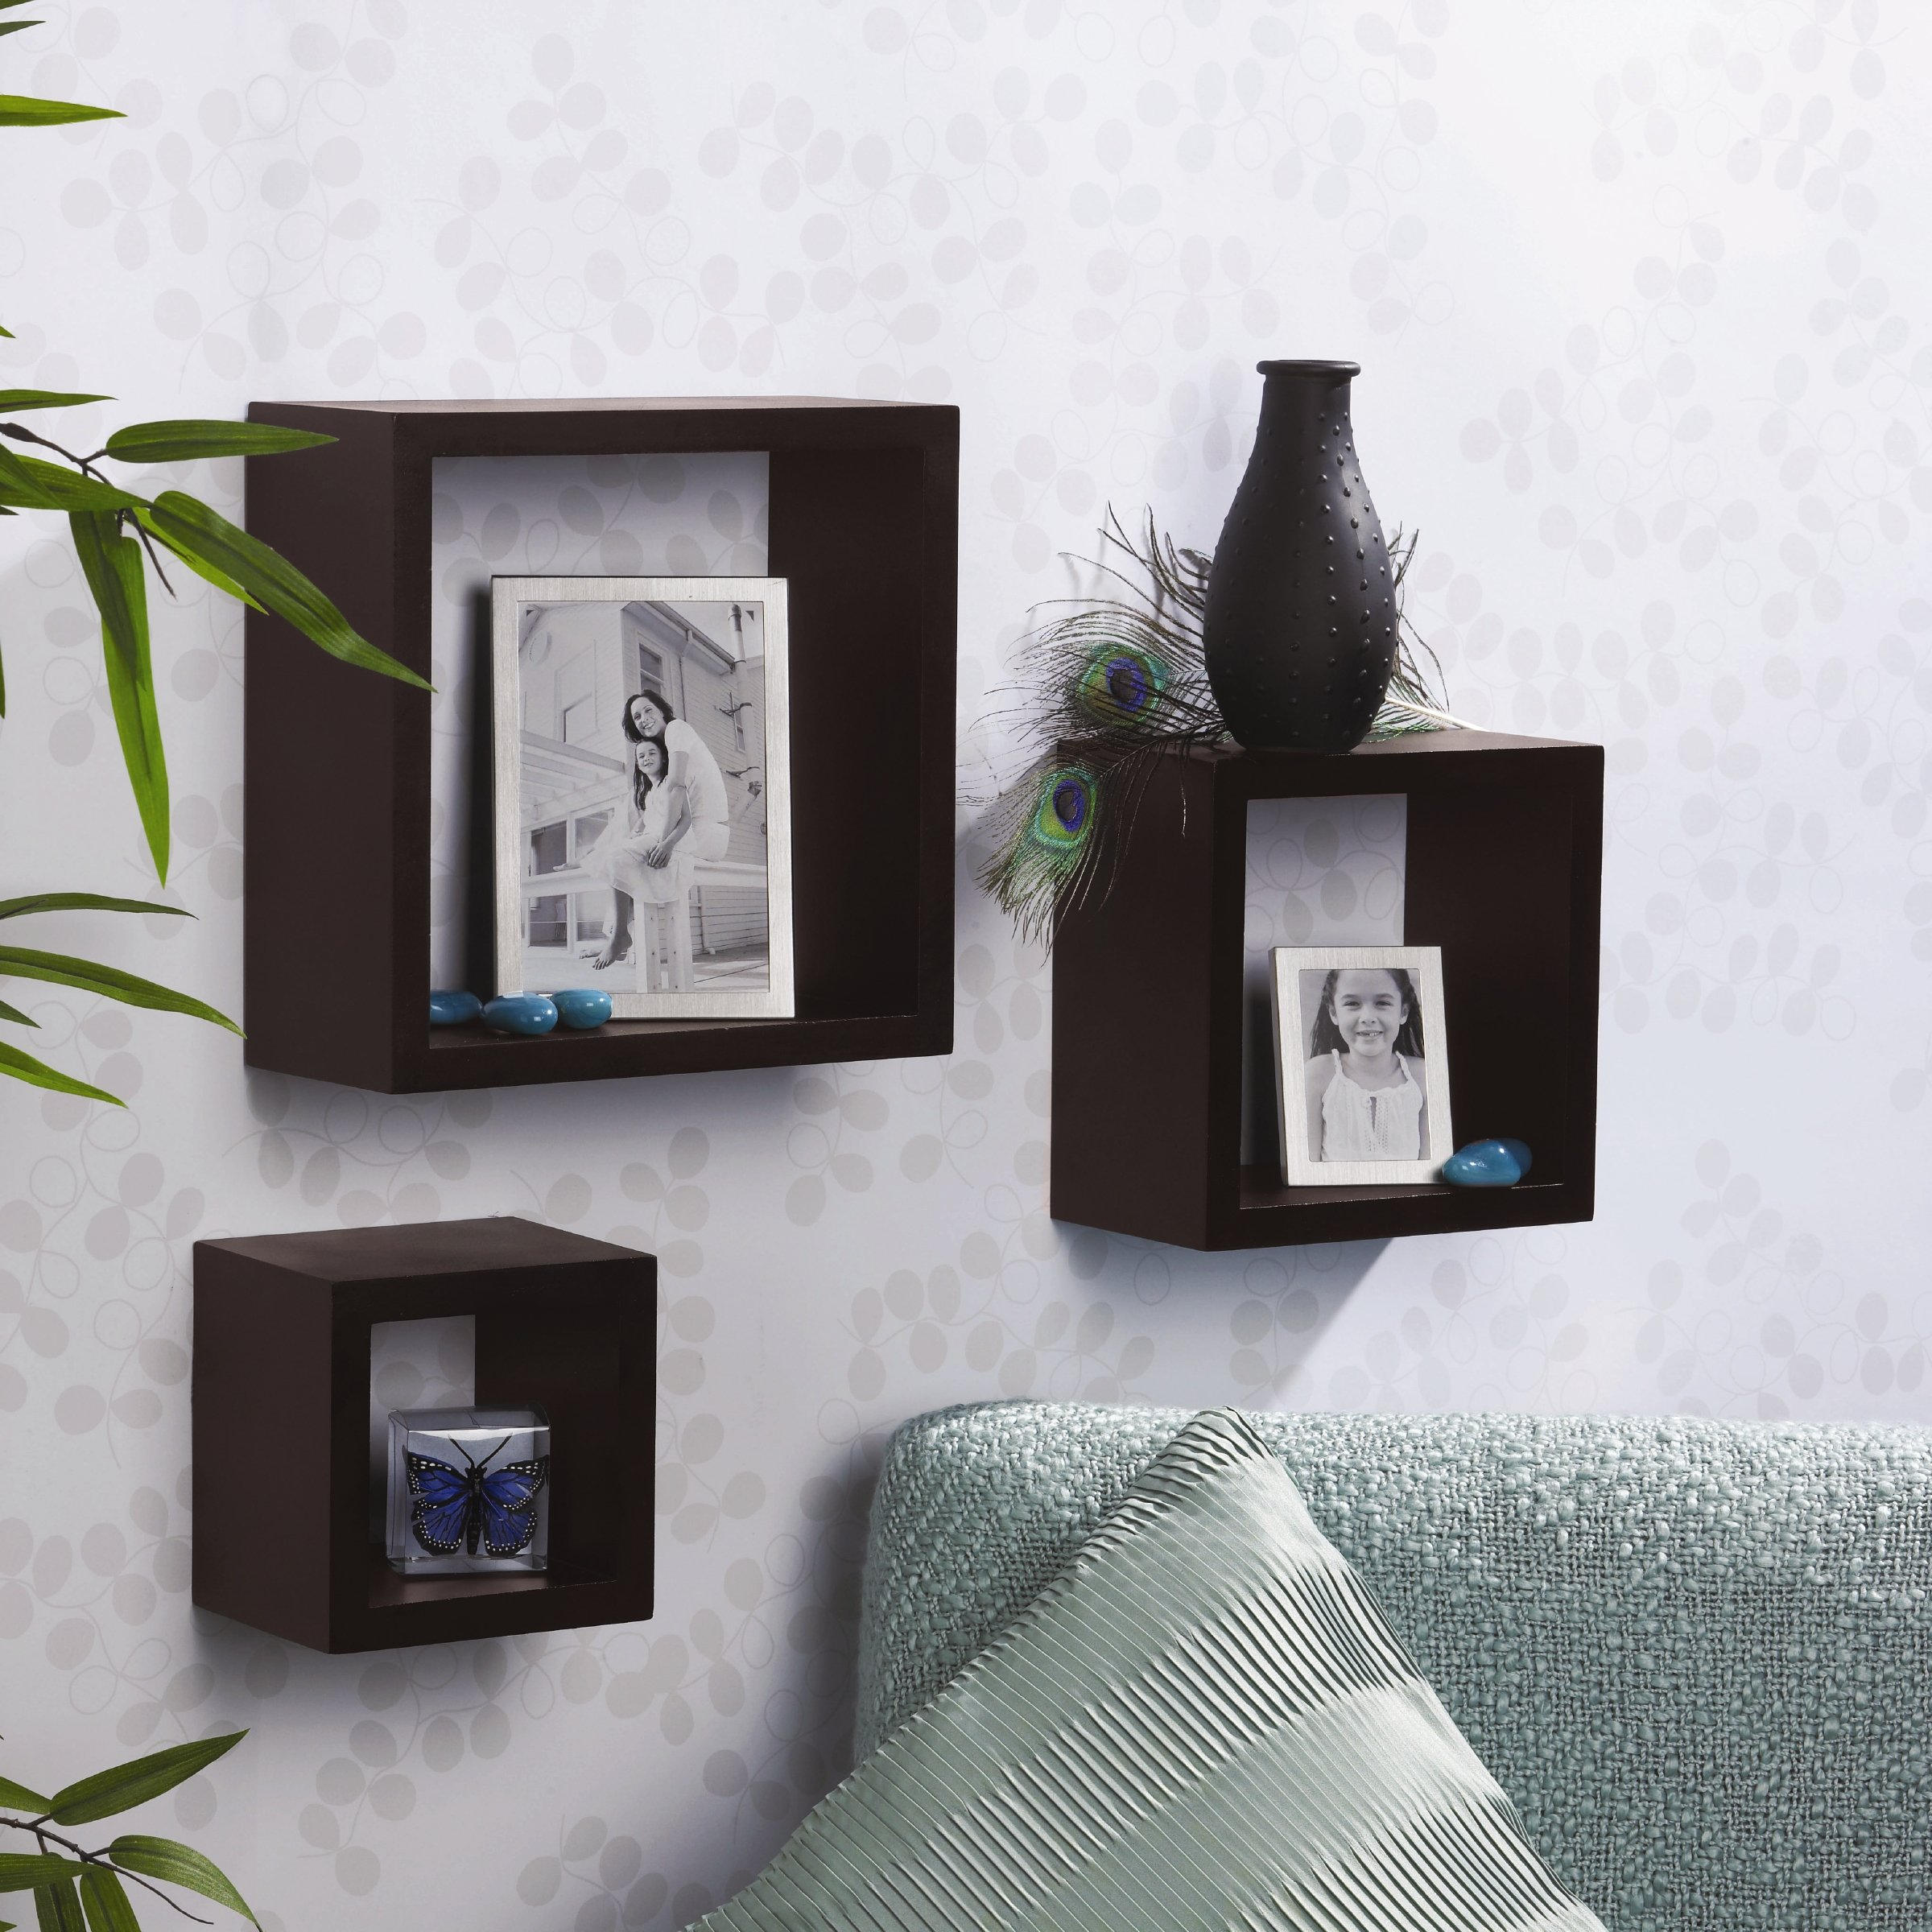 cube shelf 3 wood square wall mount display shelving home organizer decor walnut ebay. Black Bedroom Furniture Sets. Home Design Ideas